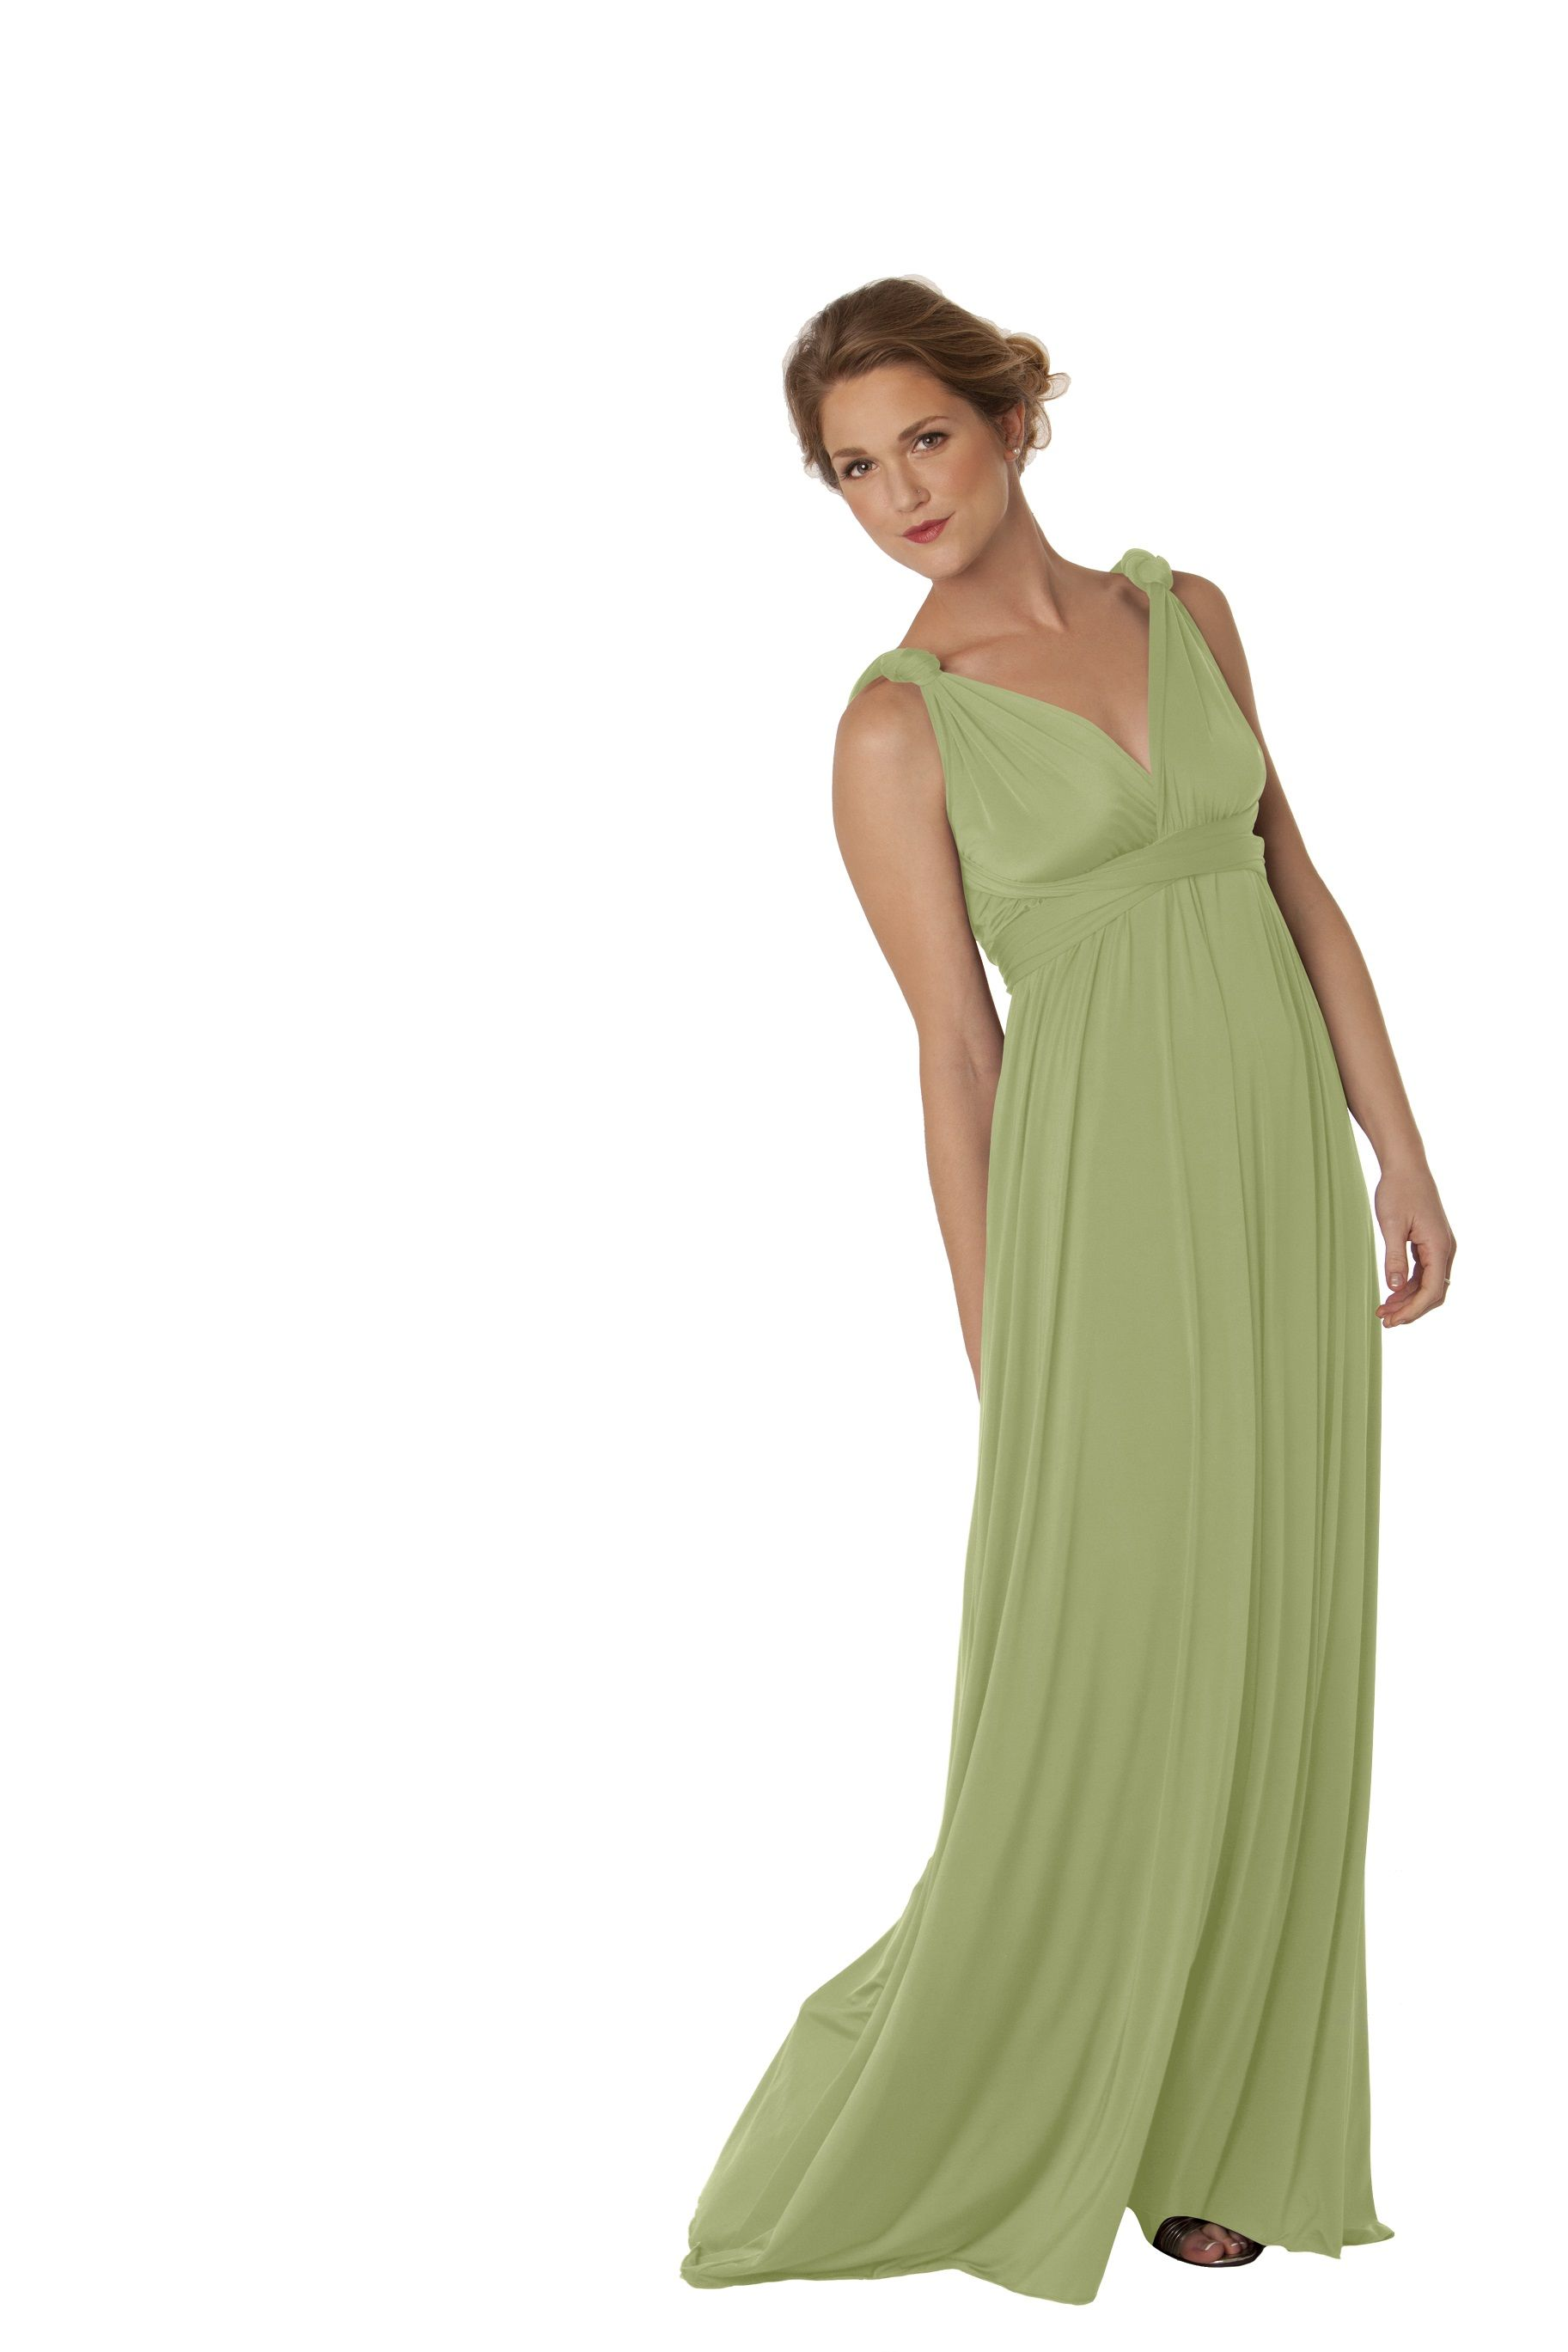 Best color dress to wear to a wedding  Order a free color swatch or try a Sneak Peek Style your